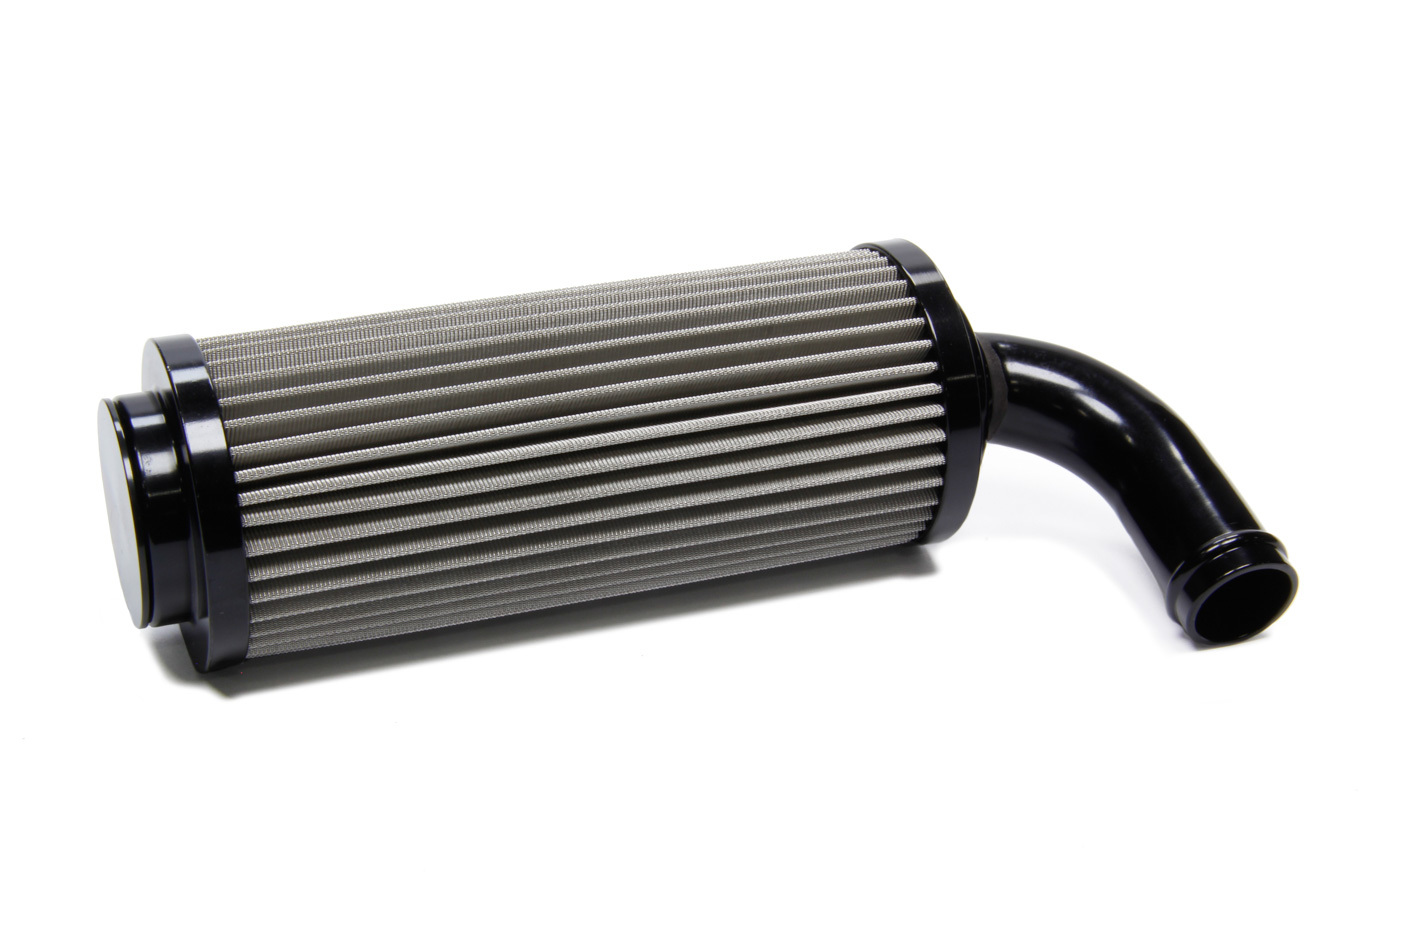 Ti22 Performance 5142 Fuel Filter, In-Tank, 90 Degree, 60 Micron, Stainless Element, 3/4 in Hose Barb, Aluminum, Black Anodize, Each